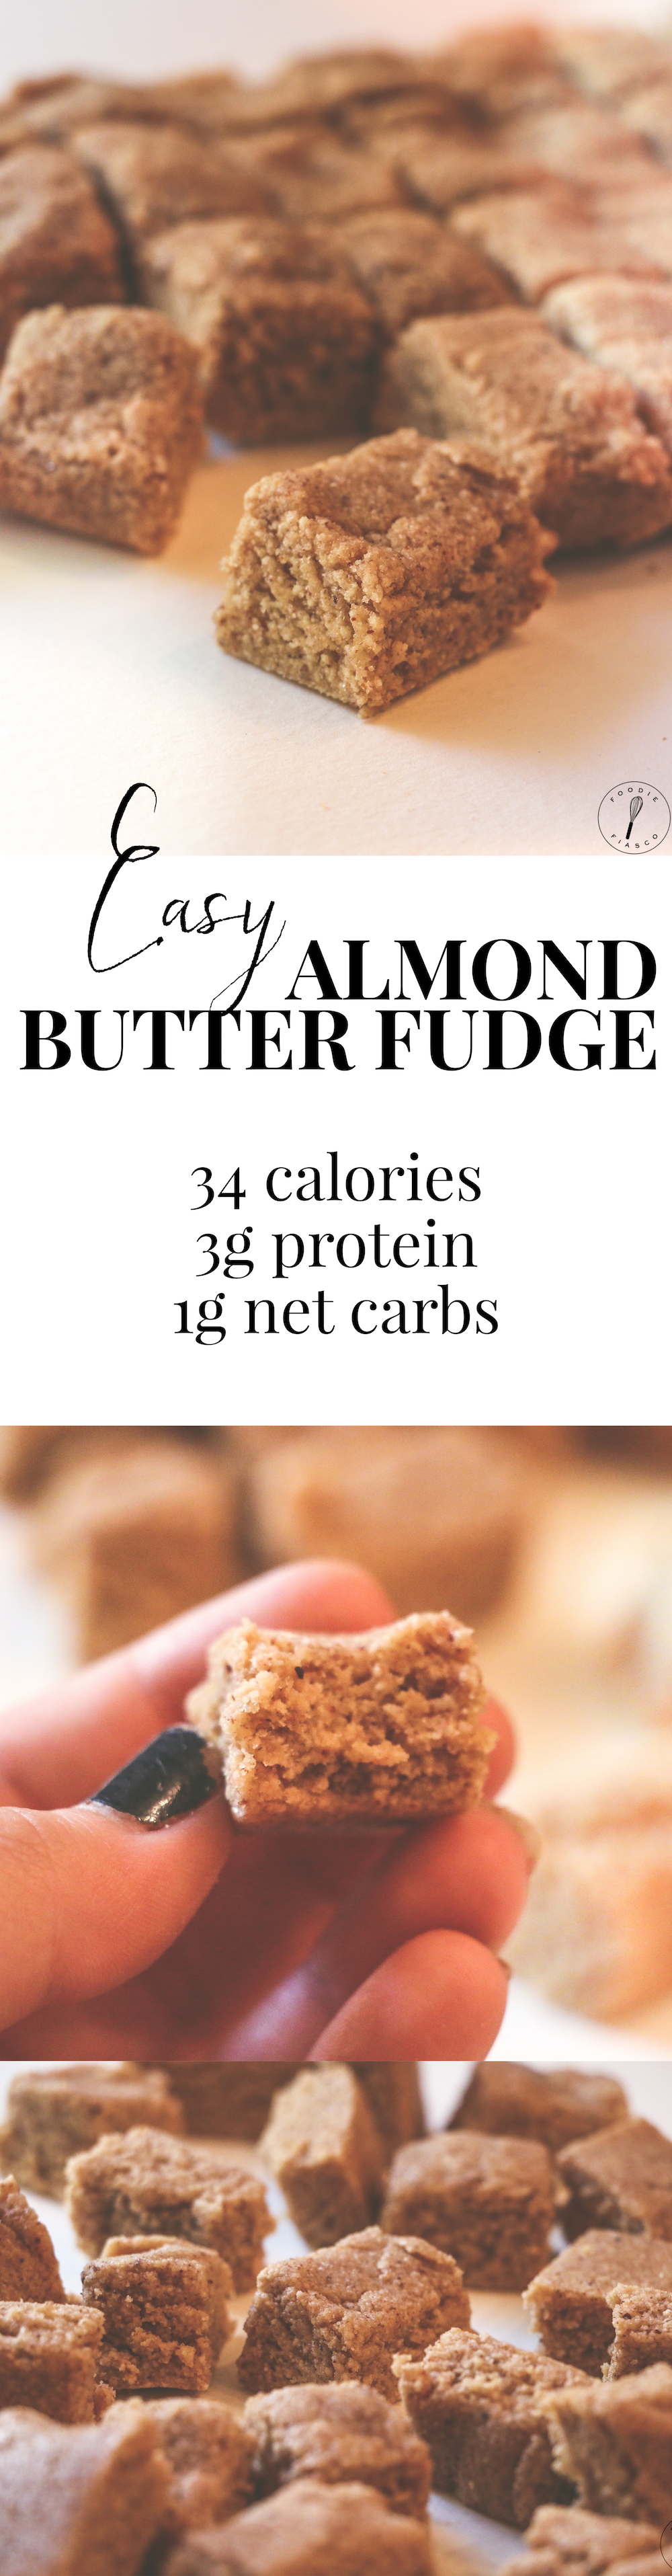 almond-fudge-pinterest